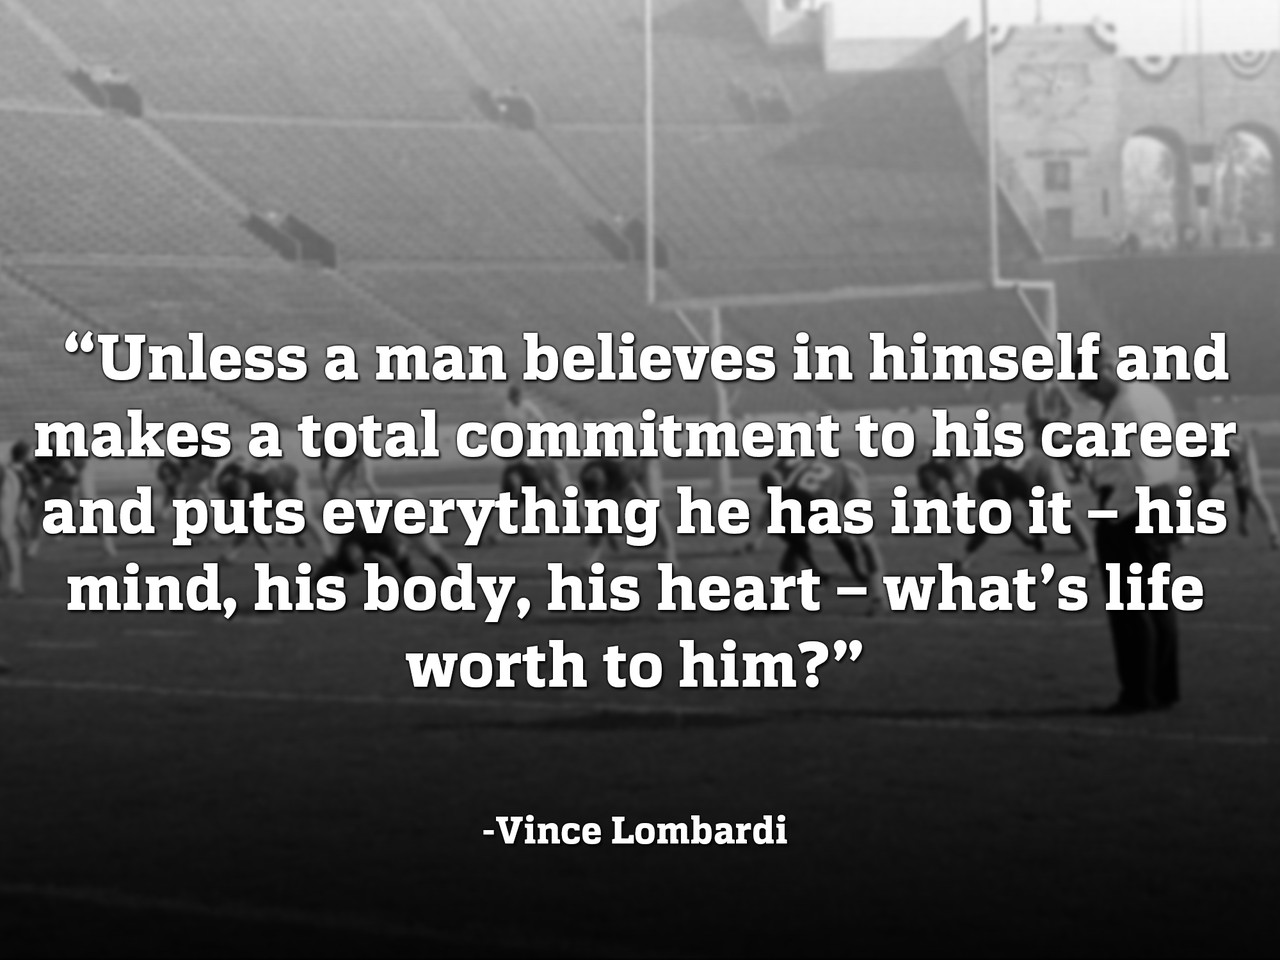 Vince Lombardi Quotes On Commitment. QuotesGram